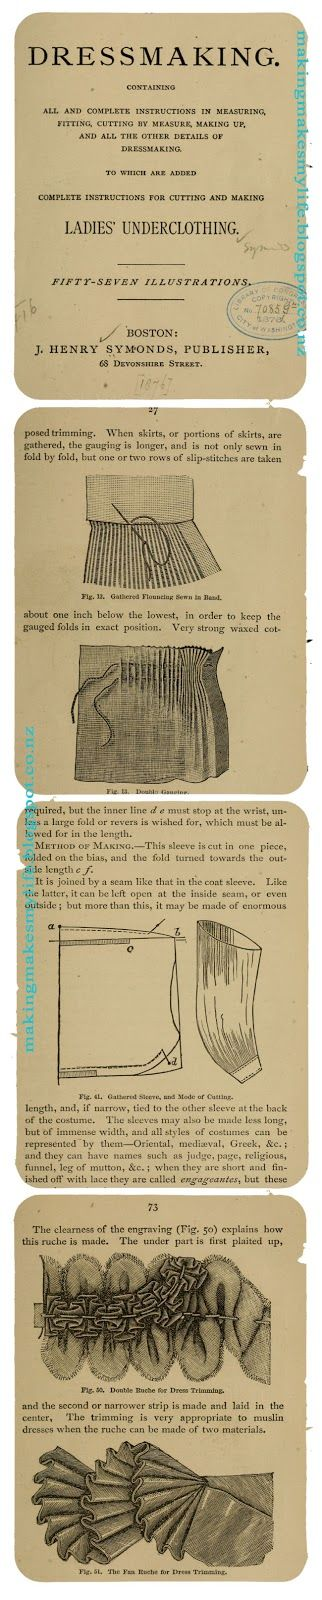 Guide to dress making by J Henry Symonds is a must-have for anyone interested in Victorian sewing techniques. Published in 1876 it's available FREE to download